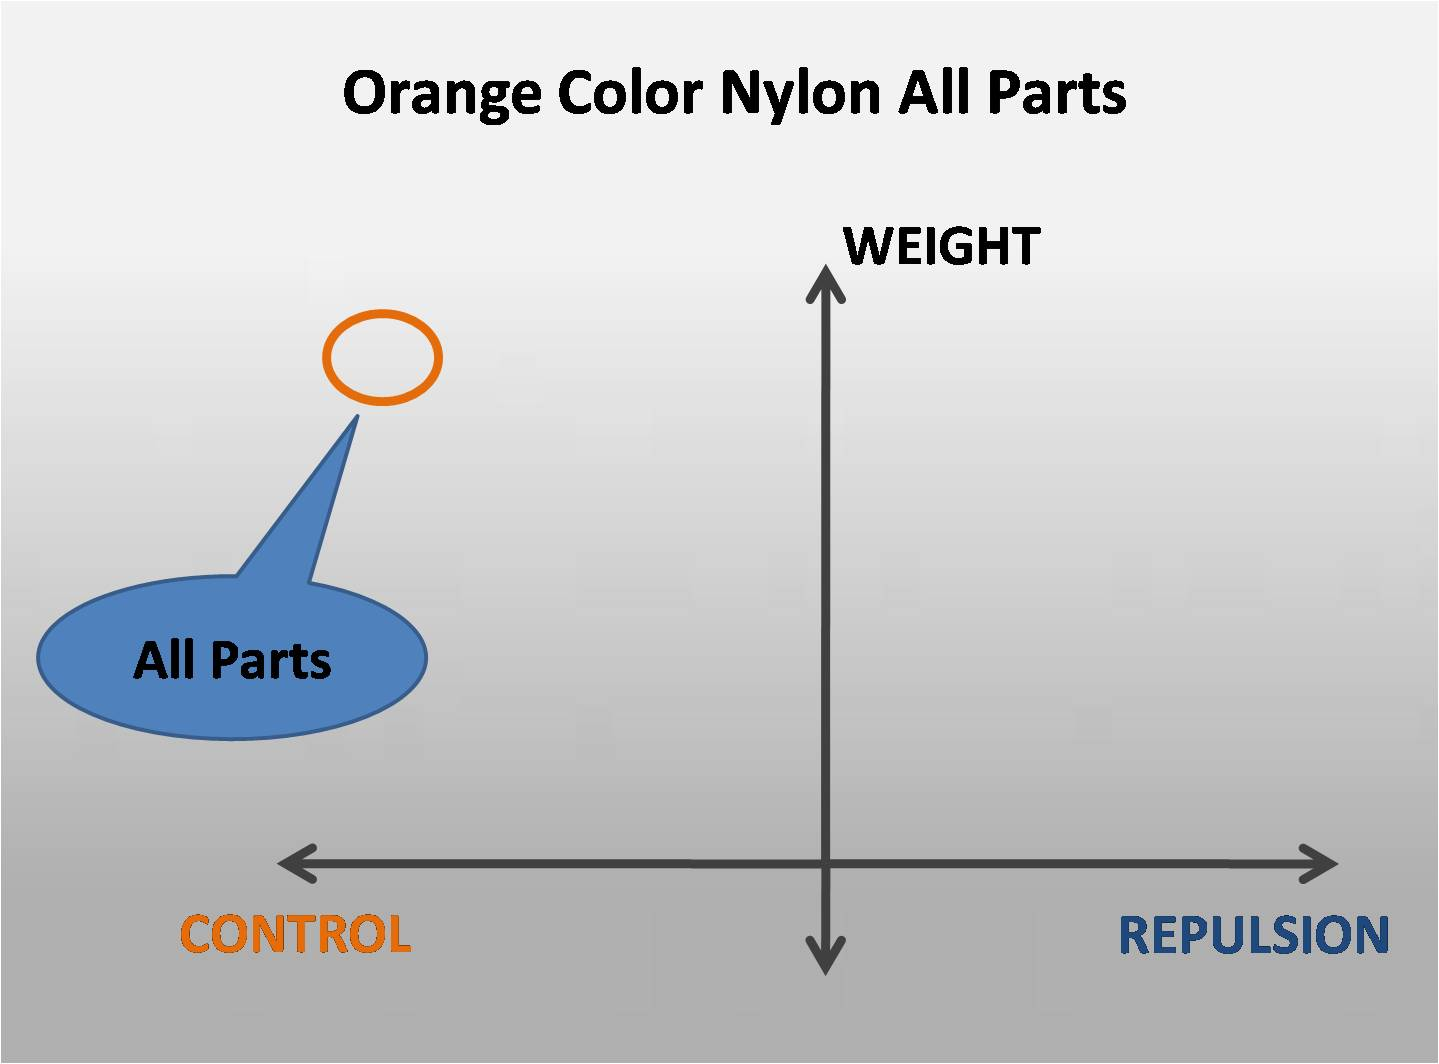 Orange Color Nylon All Parts